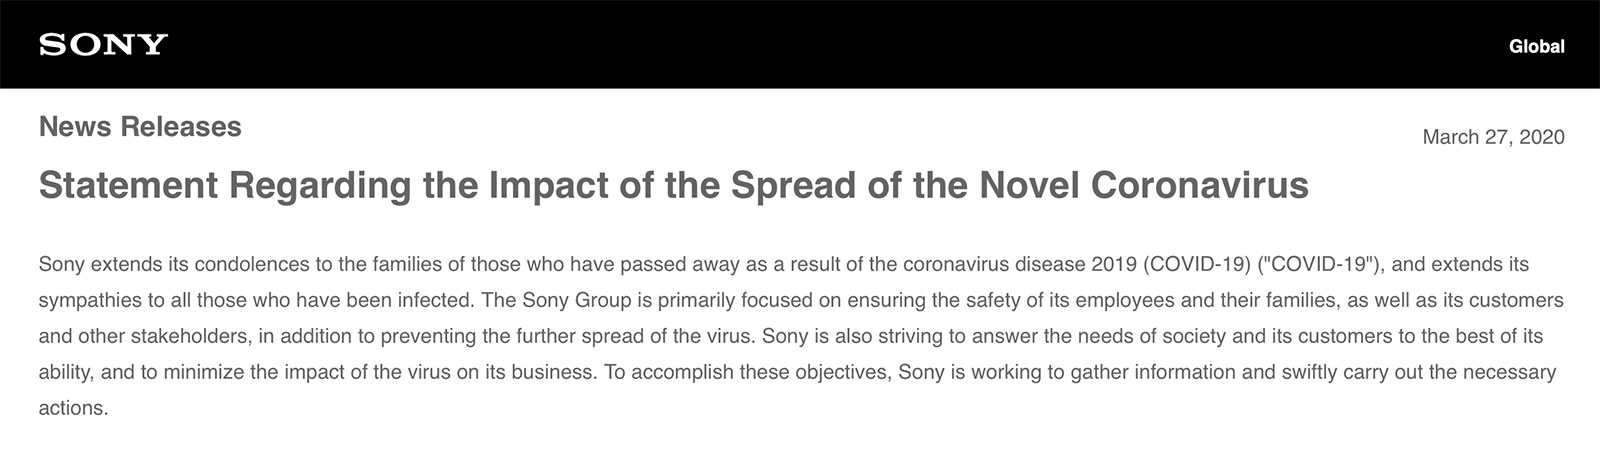 Sony Statement Regarding the Impact of the Spread of the Novel Coronavirus